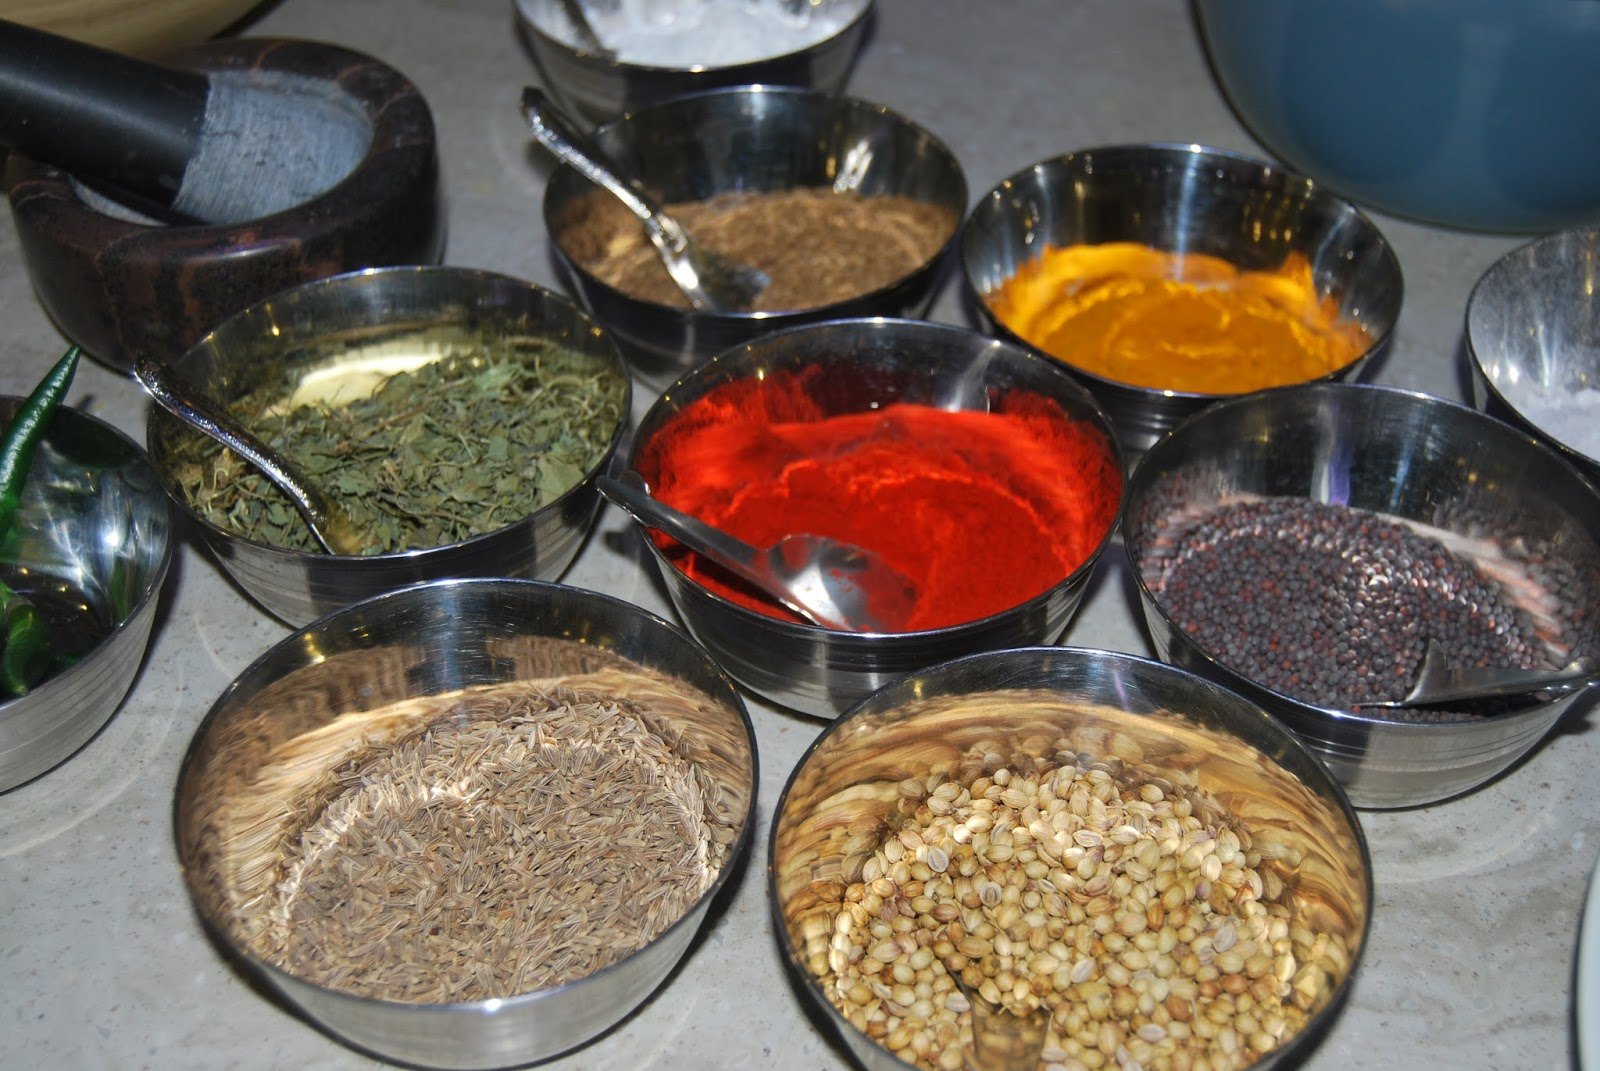 Indian spices #CookWithHari photo by Modern Bric a Brac